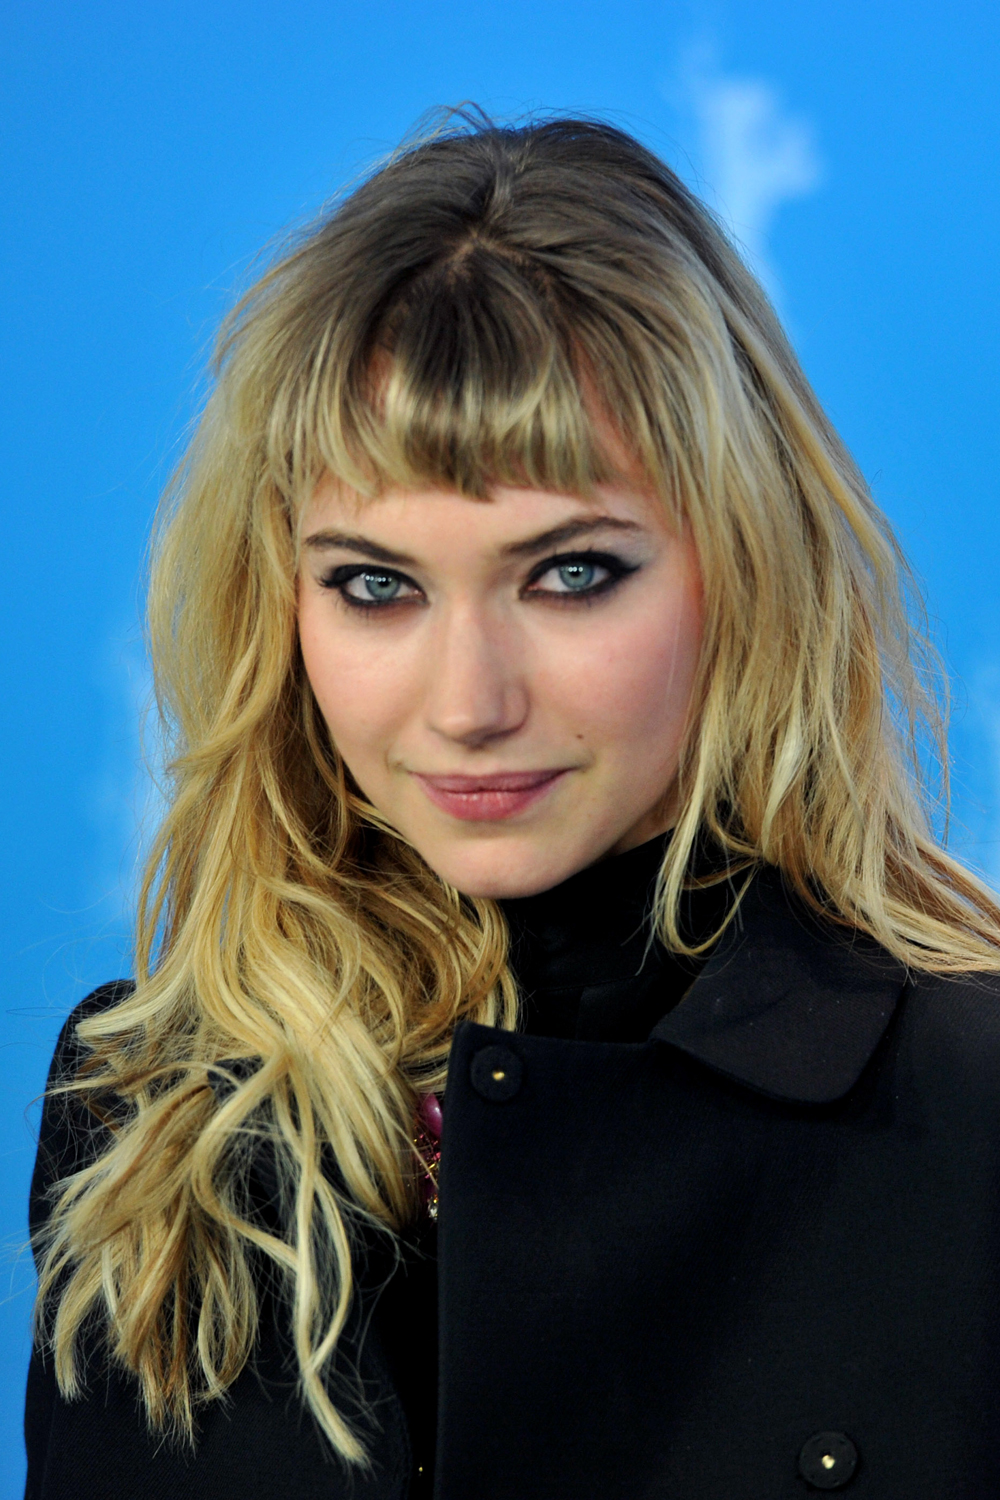 Imogen Poots nudes (79 images) Gallery, Snapchat, panties